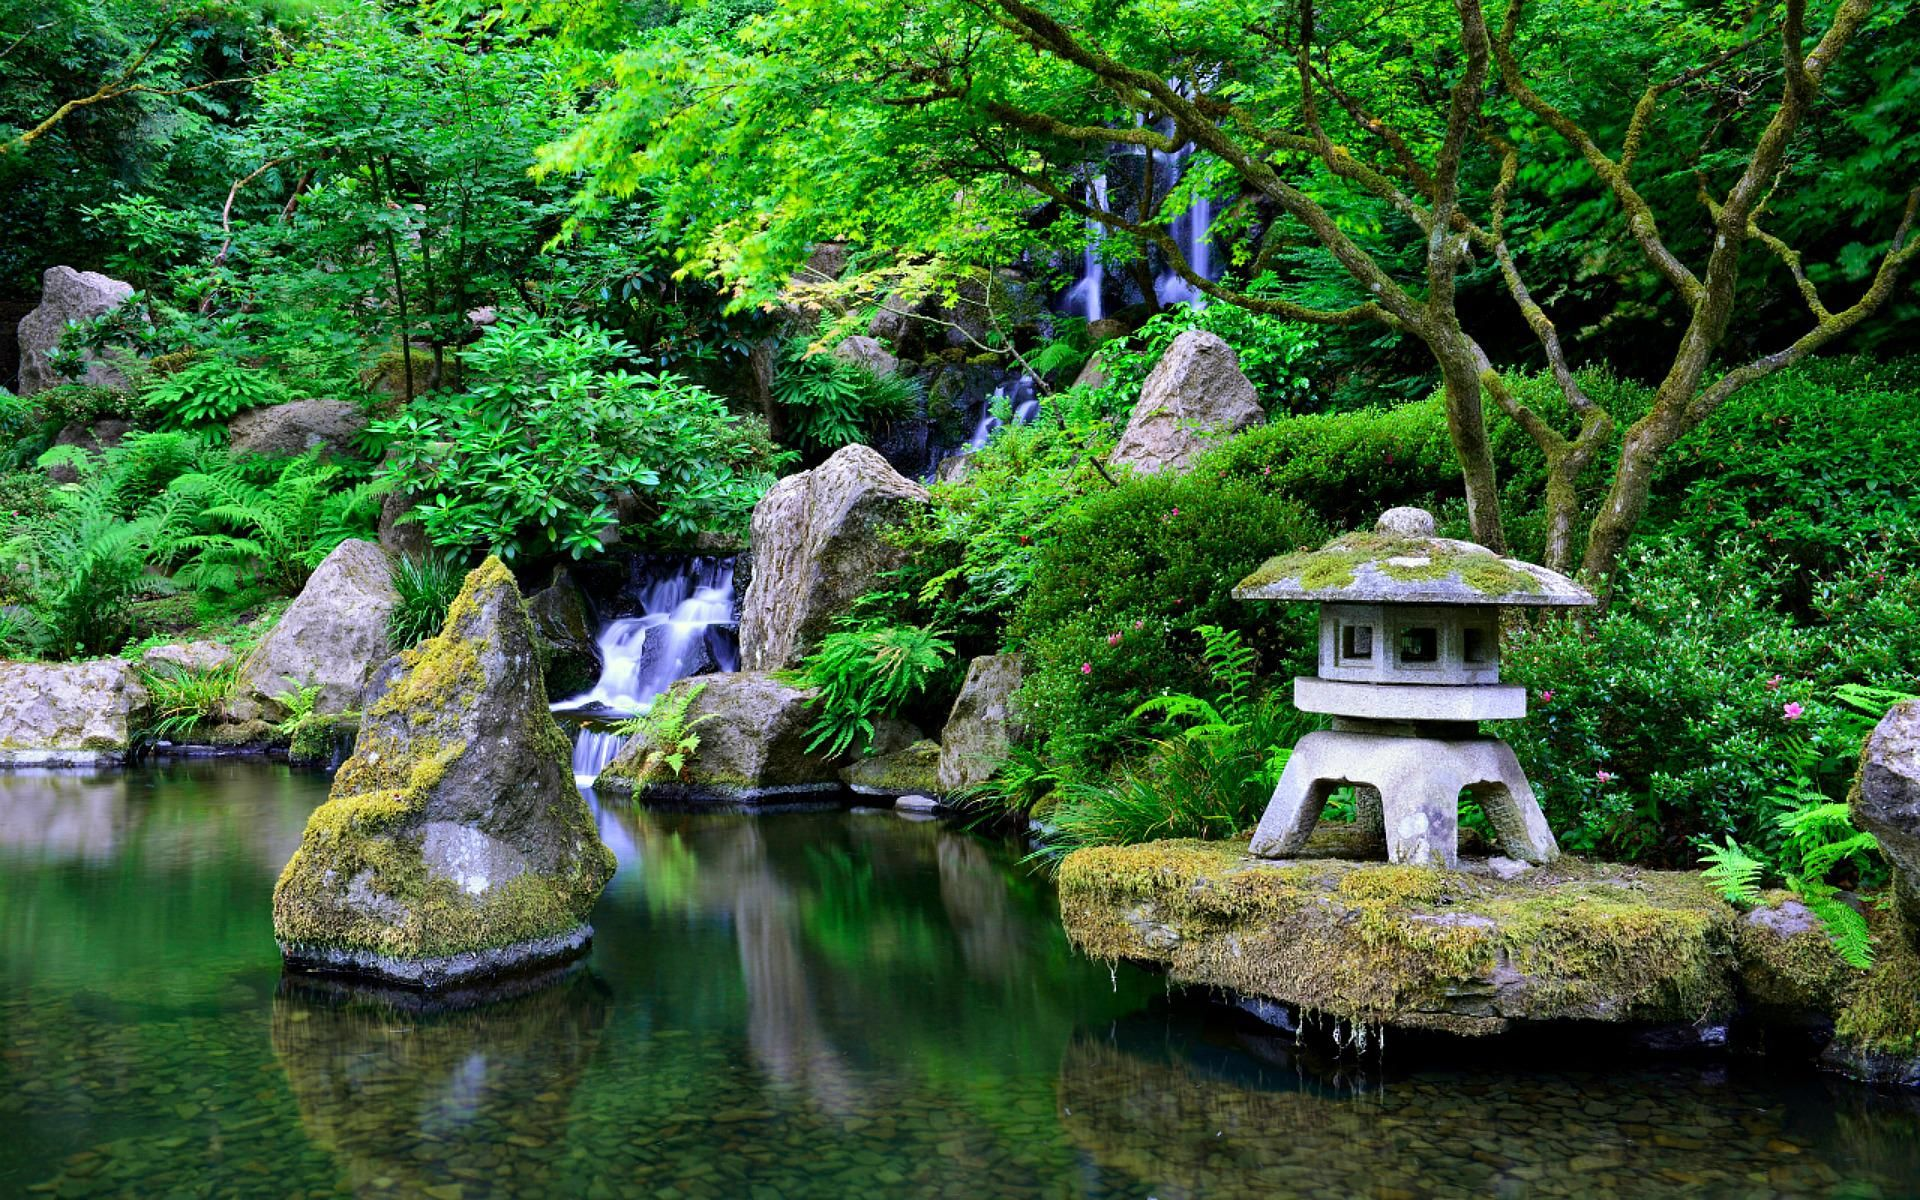 Download Wallpaper Night Japanese Garden - b53d47319a3d5053eee7aa3c50b3524c  2018-245574.jpg